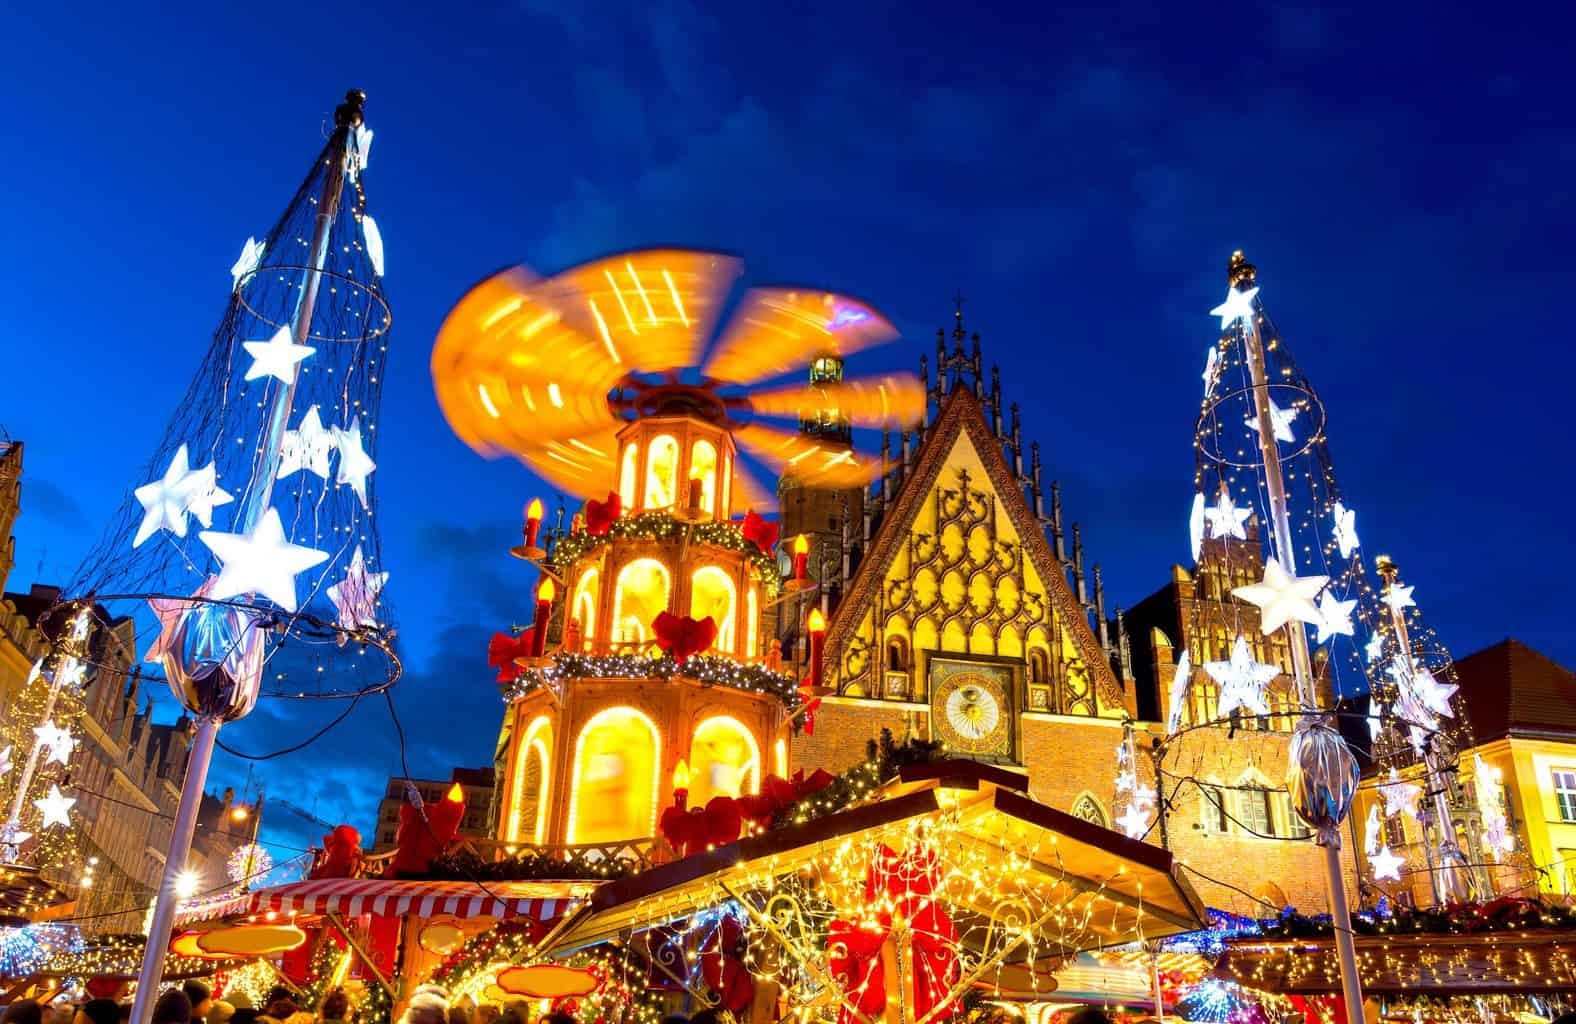 Some of the amazing Christmas decorations you'll find in Wroclaw, Poland.